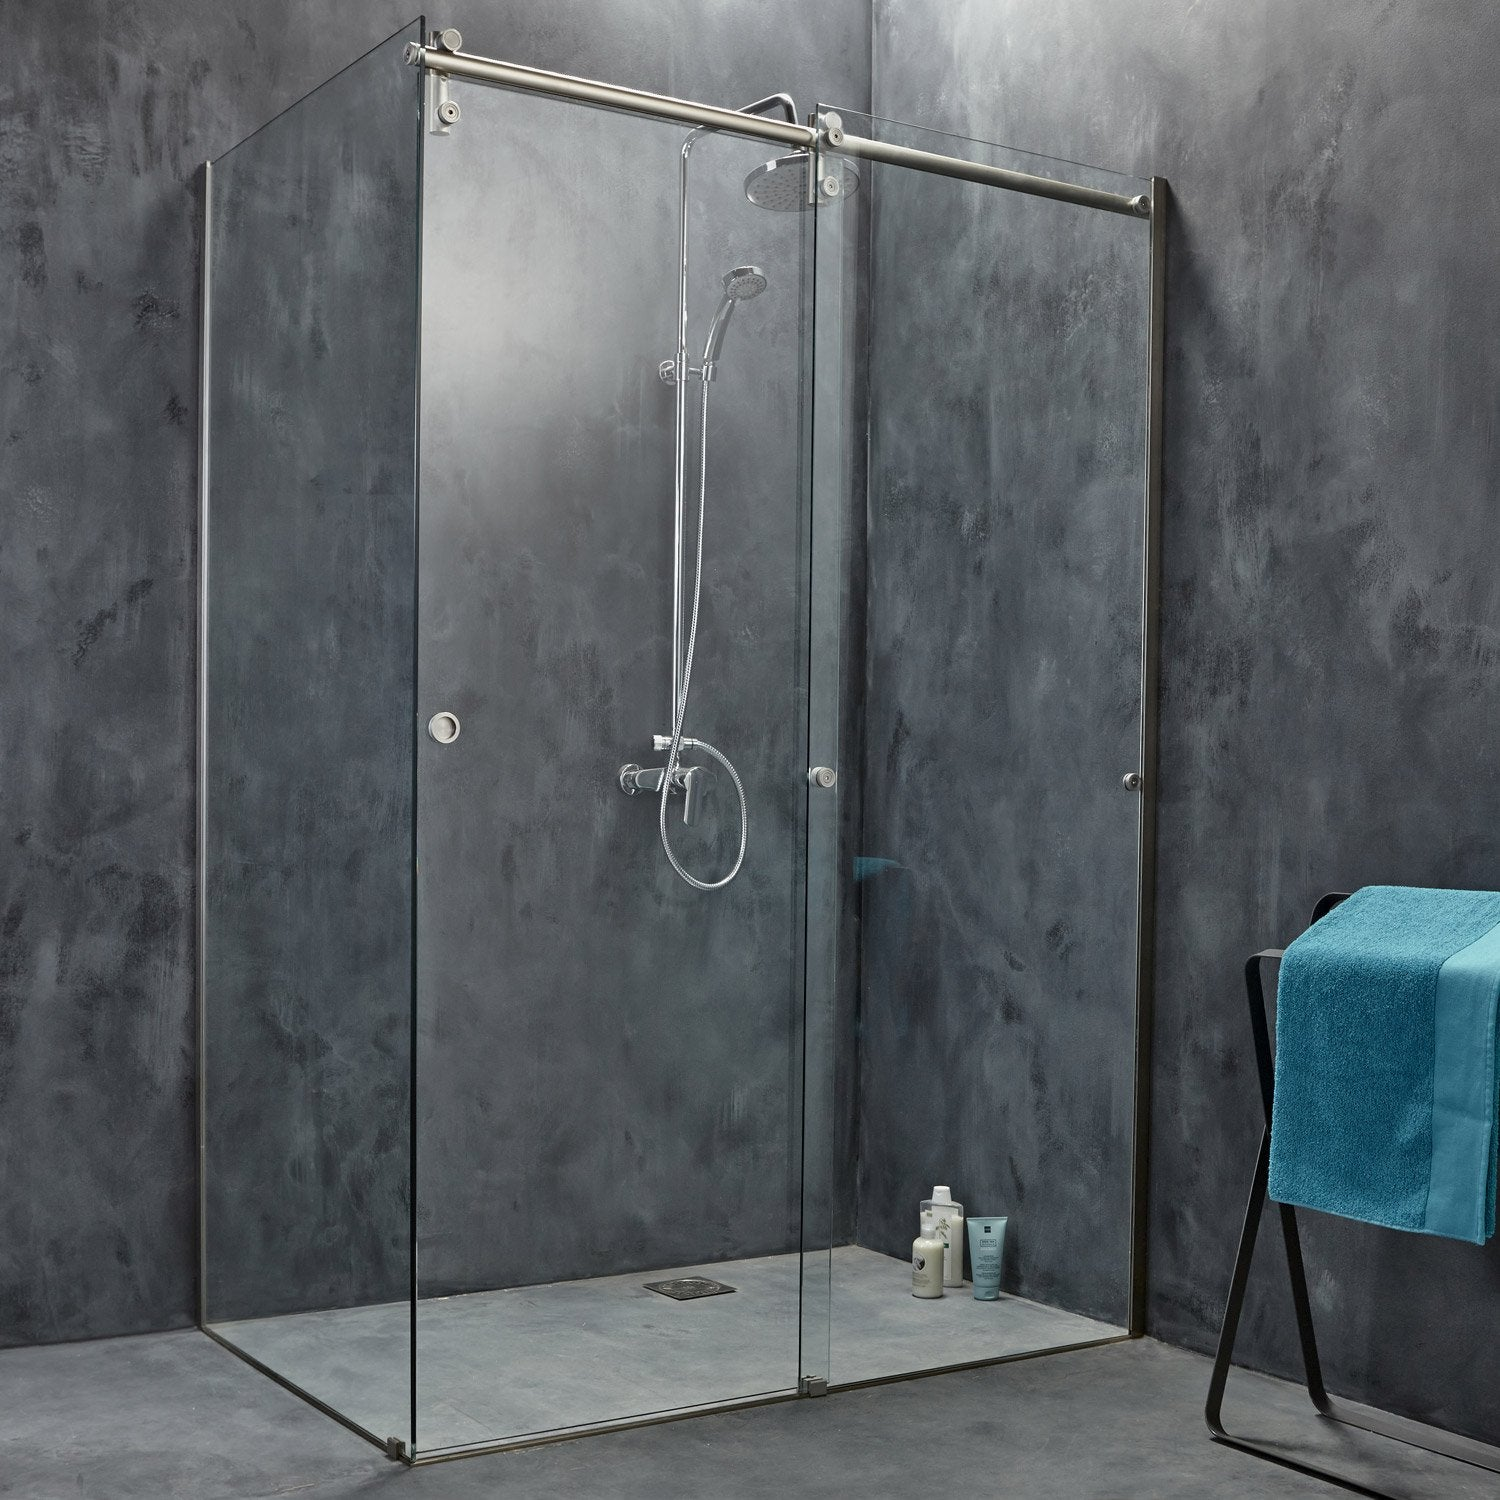 porte de douche coulissante transparent ellipse leroy merlin. Black Bedroom Furniture Sets. Home Design Ideas